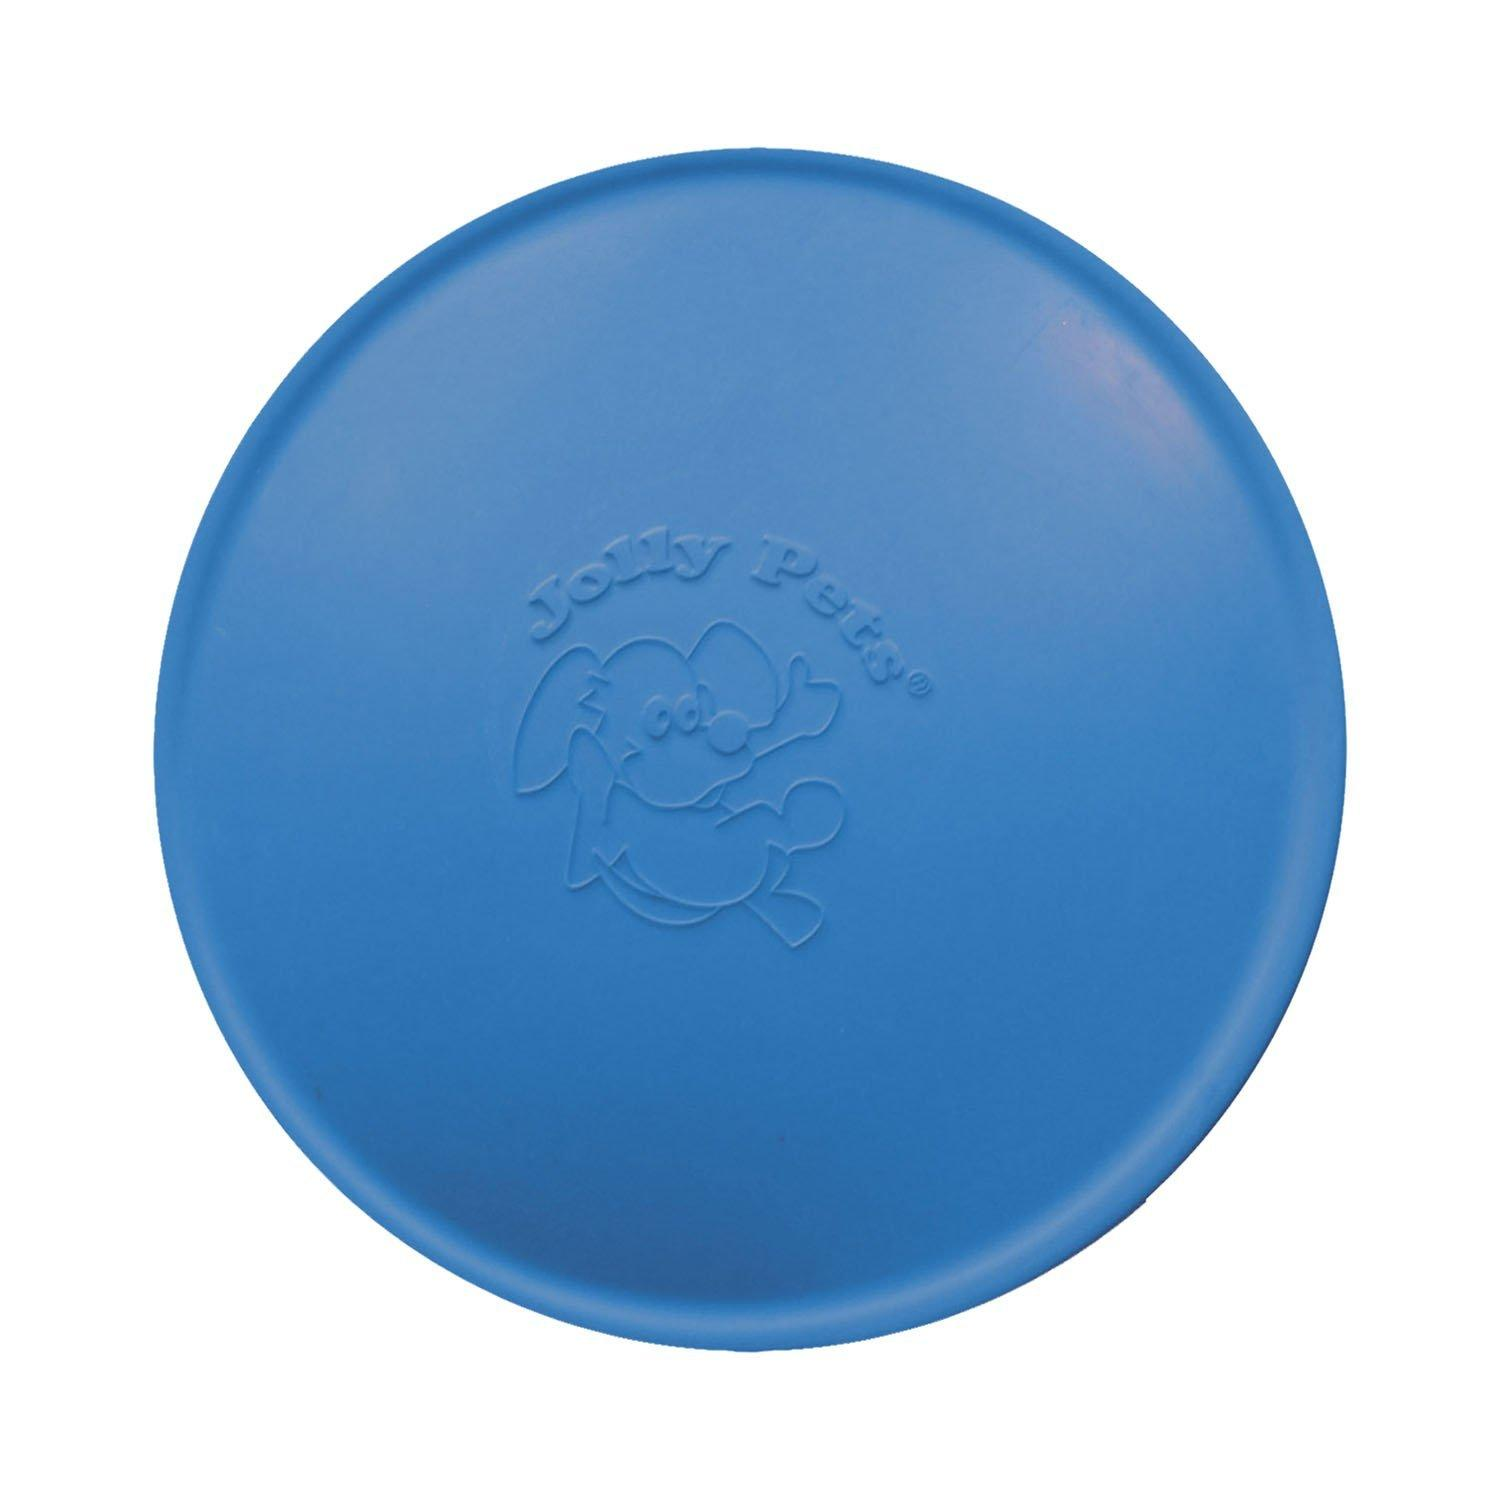 Jolly Pets Jolly Flyer Rubber Frisbee Dog Toy, 9.5-in